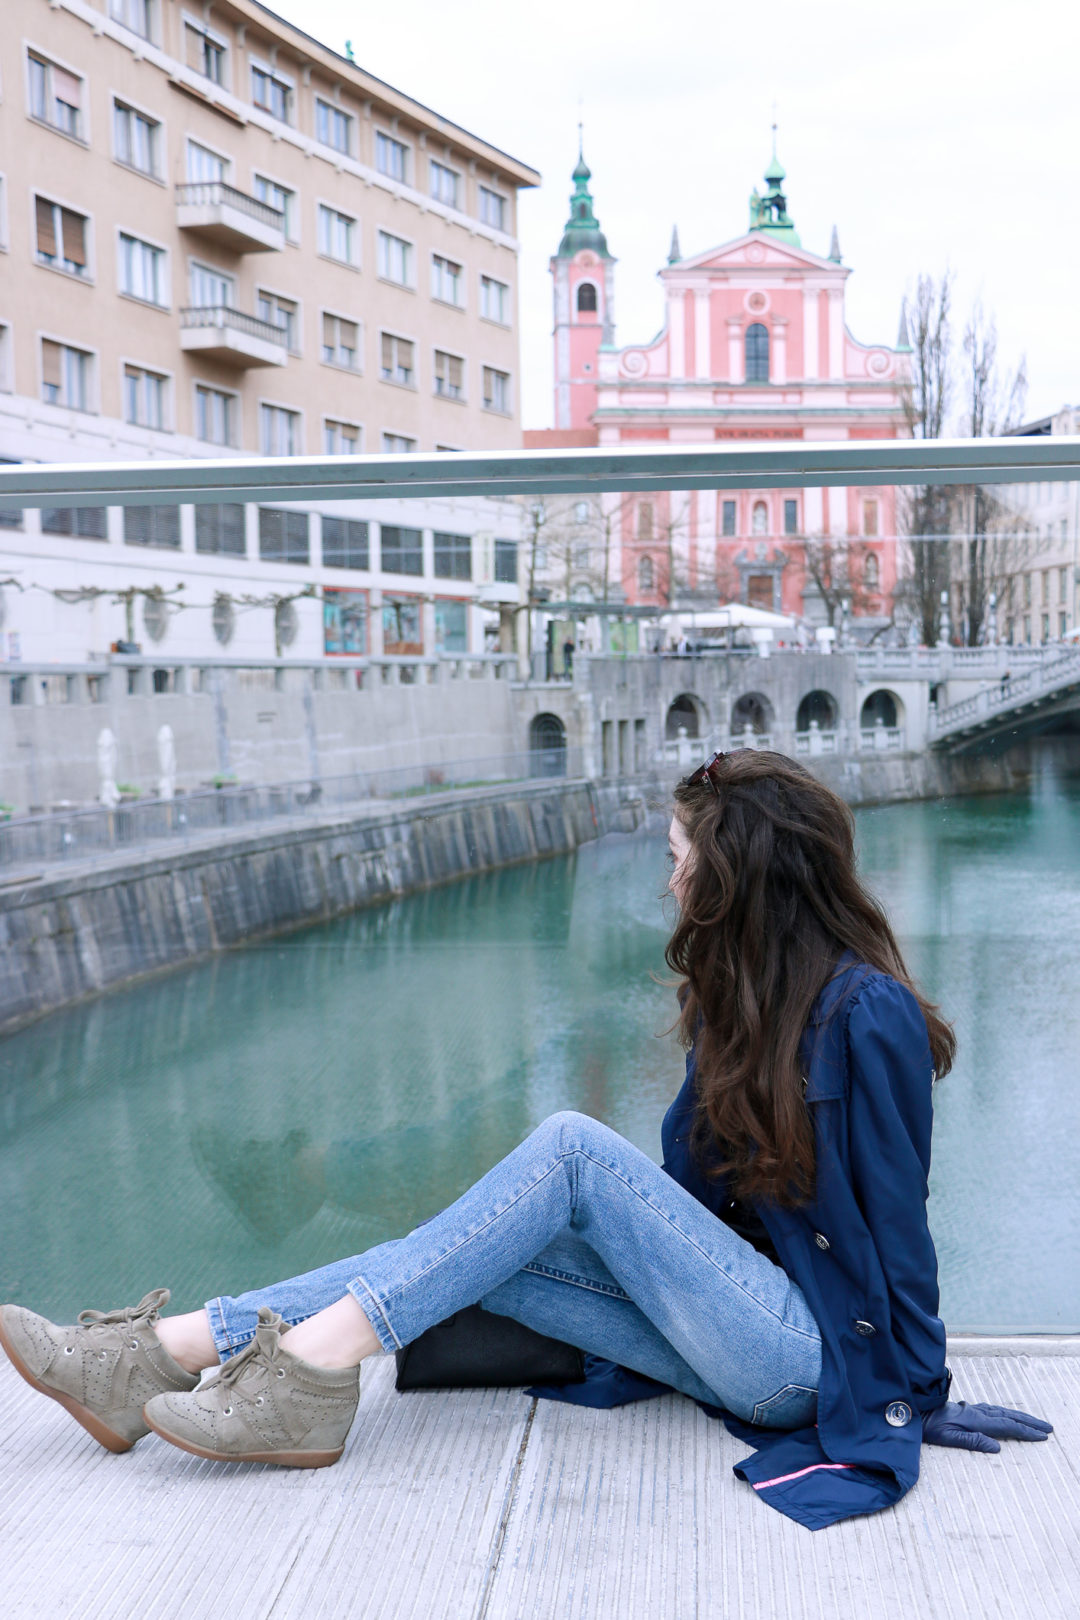 Fashion blogger Veronika Lipar of Brunette From Wall Street sharing her chic casual Friday outfit in shades of blue